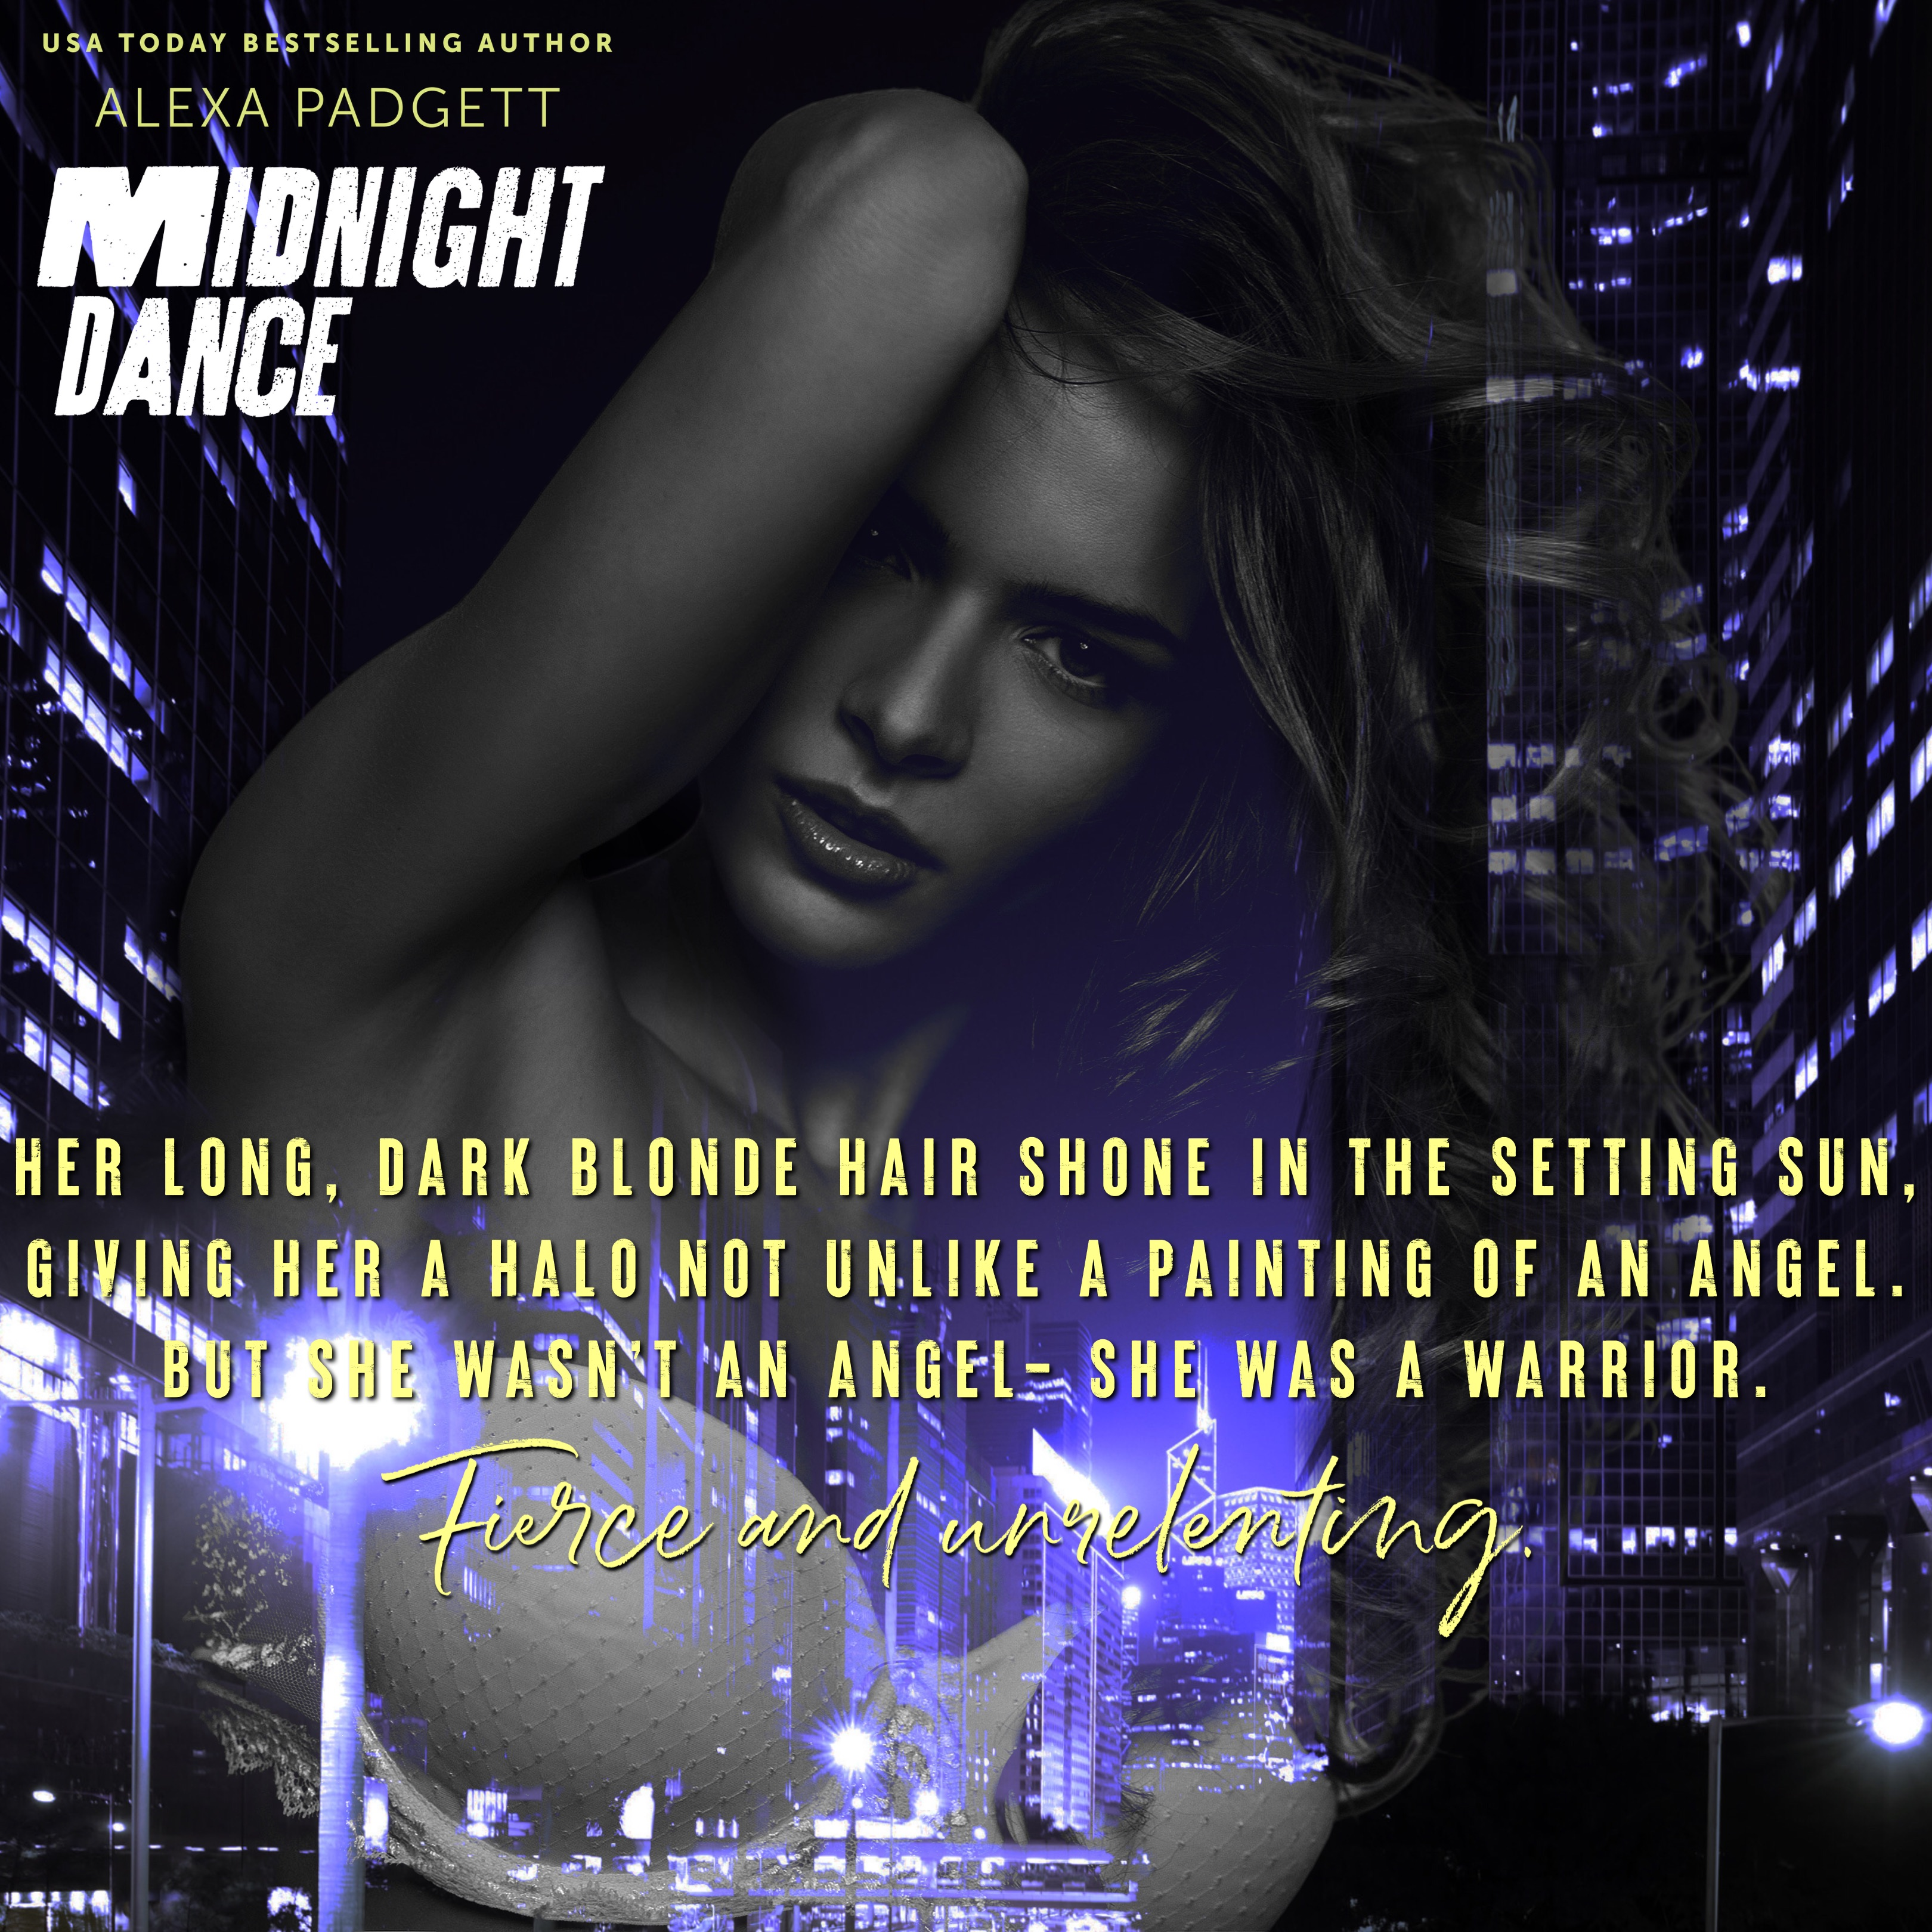 October 26 & RELEASE DAY Midnight Dance teaser